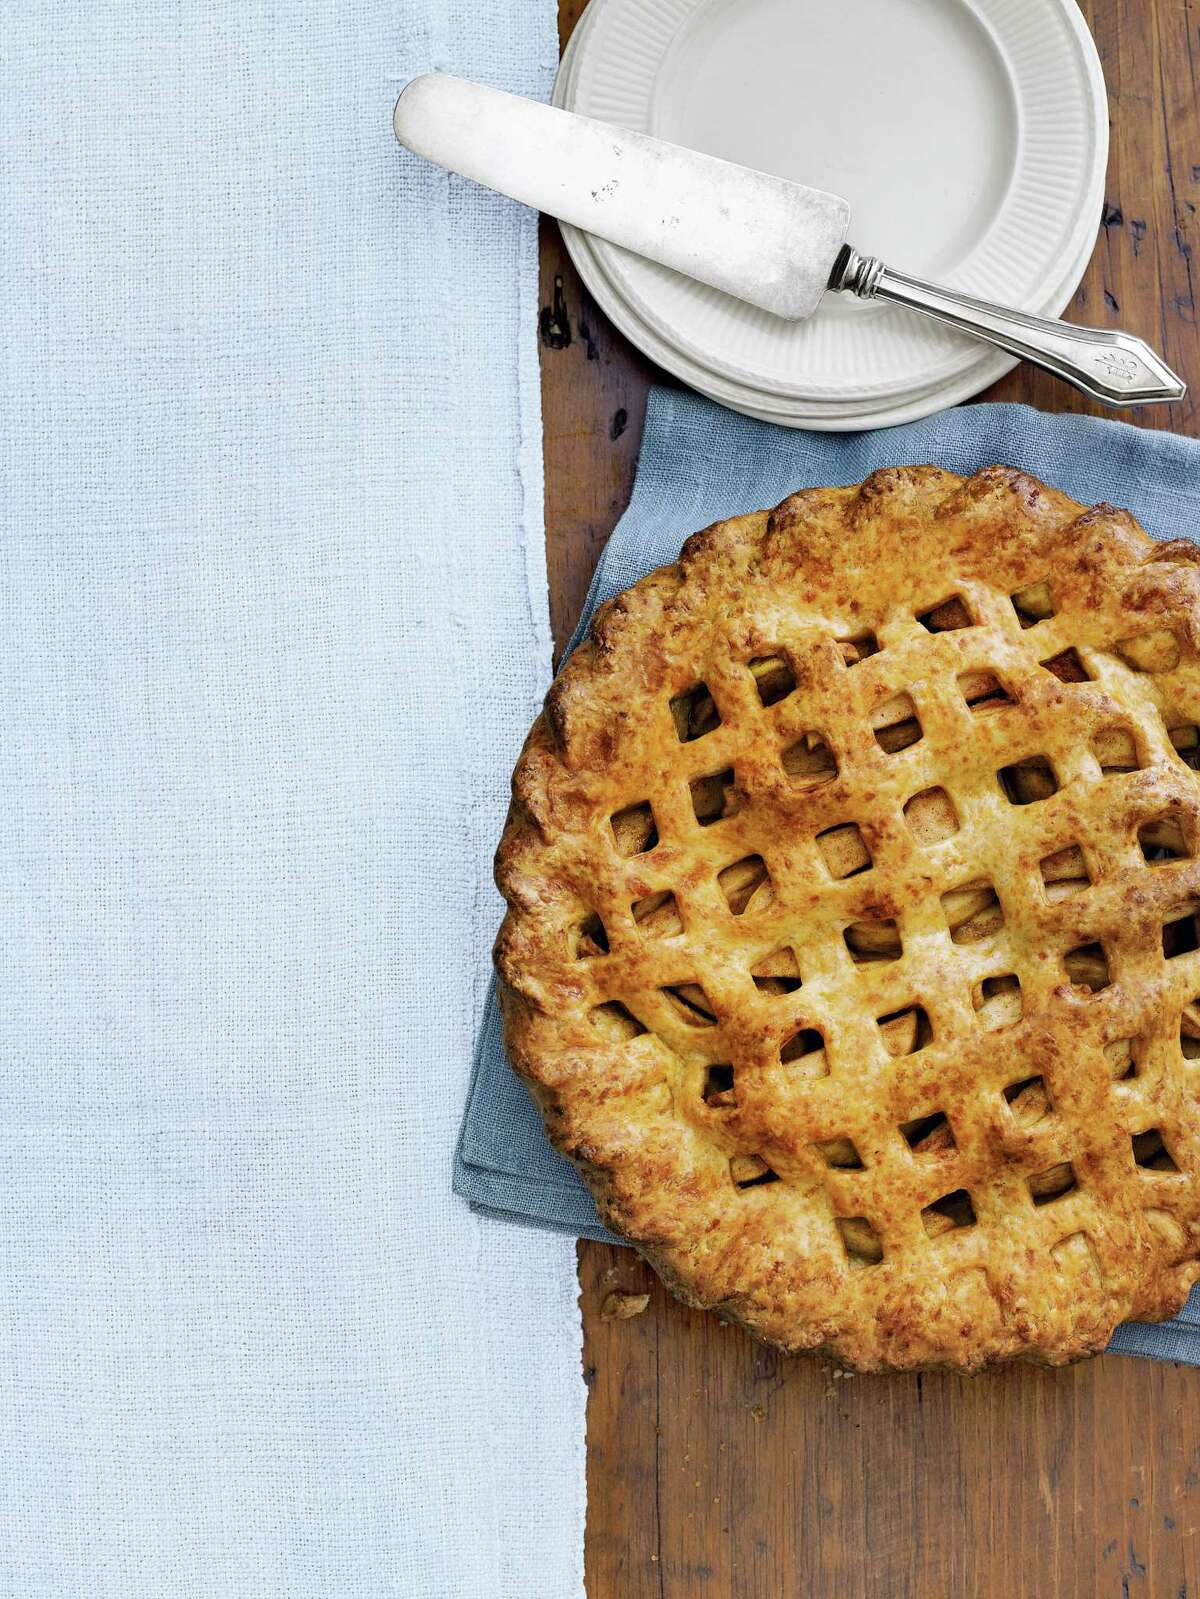 Country Living recipe for Cheddar Apple Pie.